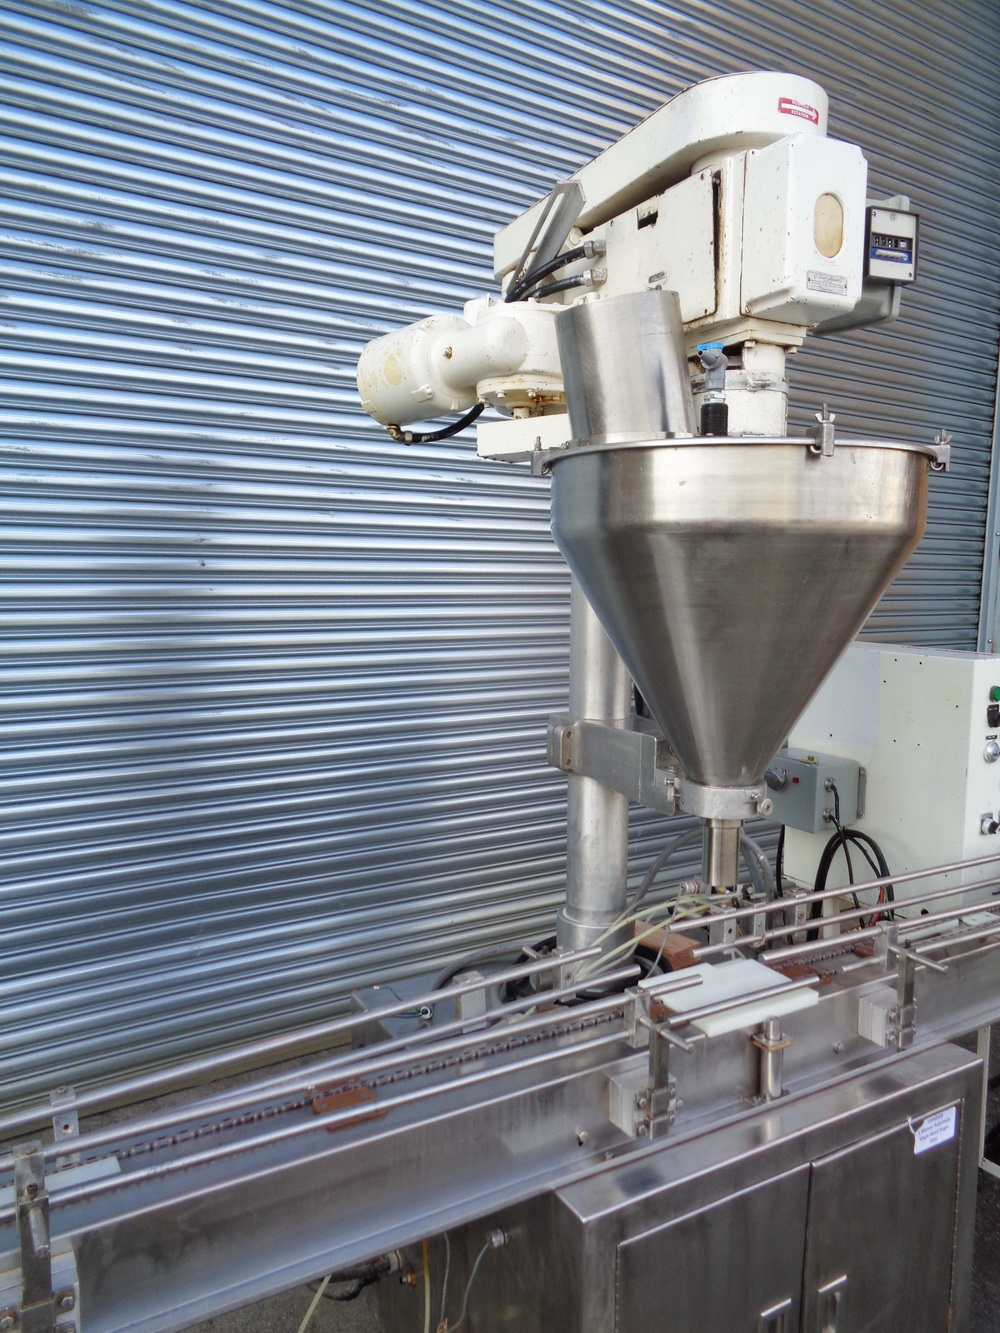 Mateer Automatic Single Head Auger Filler, Model 33-A, S/N A-467 - Image 2 of 10